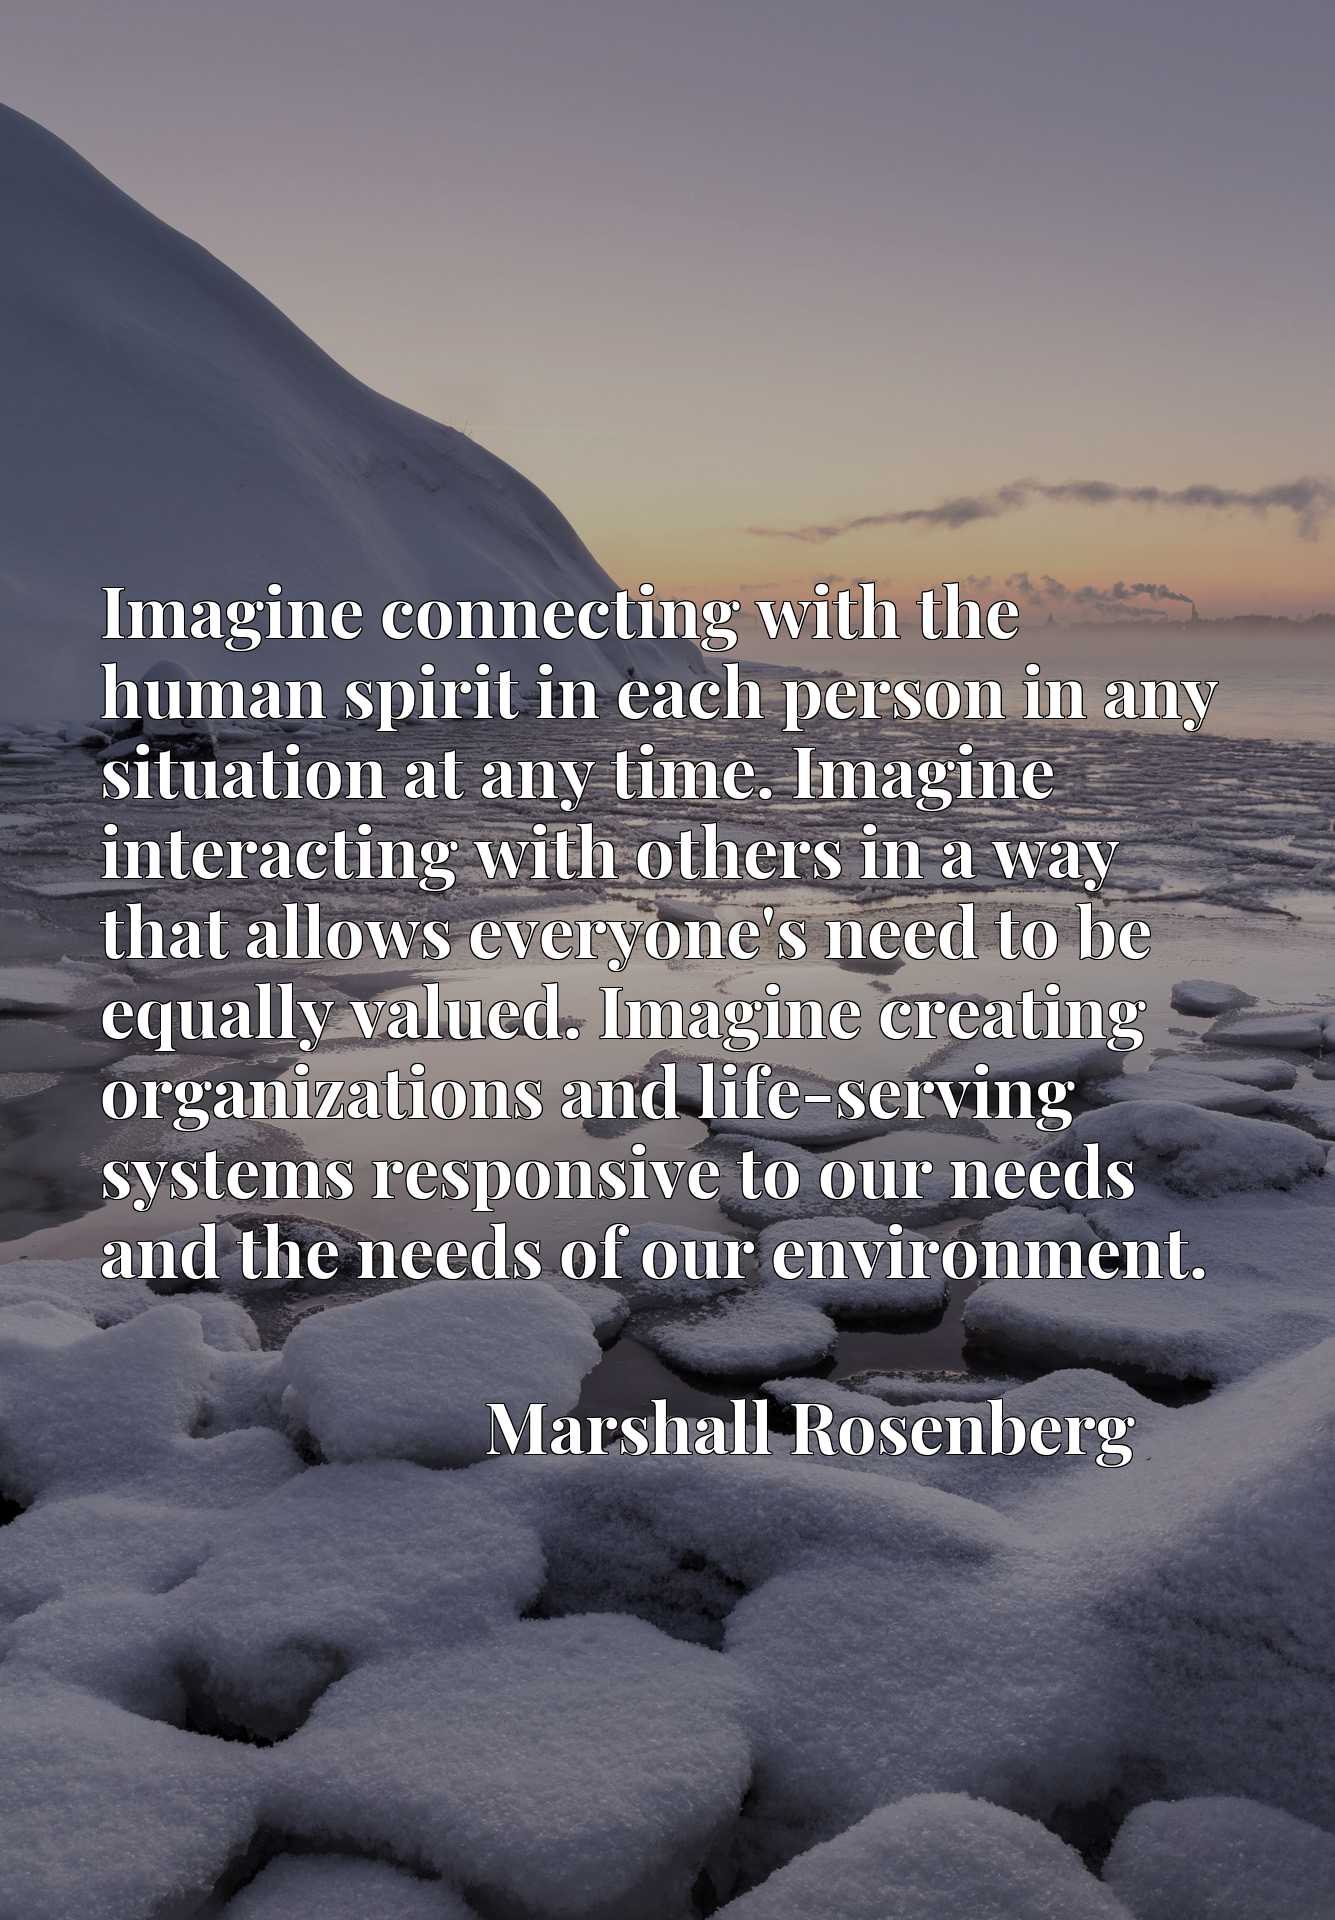 Imagine connecting with the human spirit in each person in any situation at any time. Imagine interacting with others in a way that allows everyone's need to be equally valued. Imagine creating organizations and life-serving systems responsive to our needs and the needs of our environment.